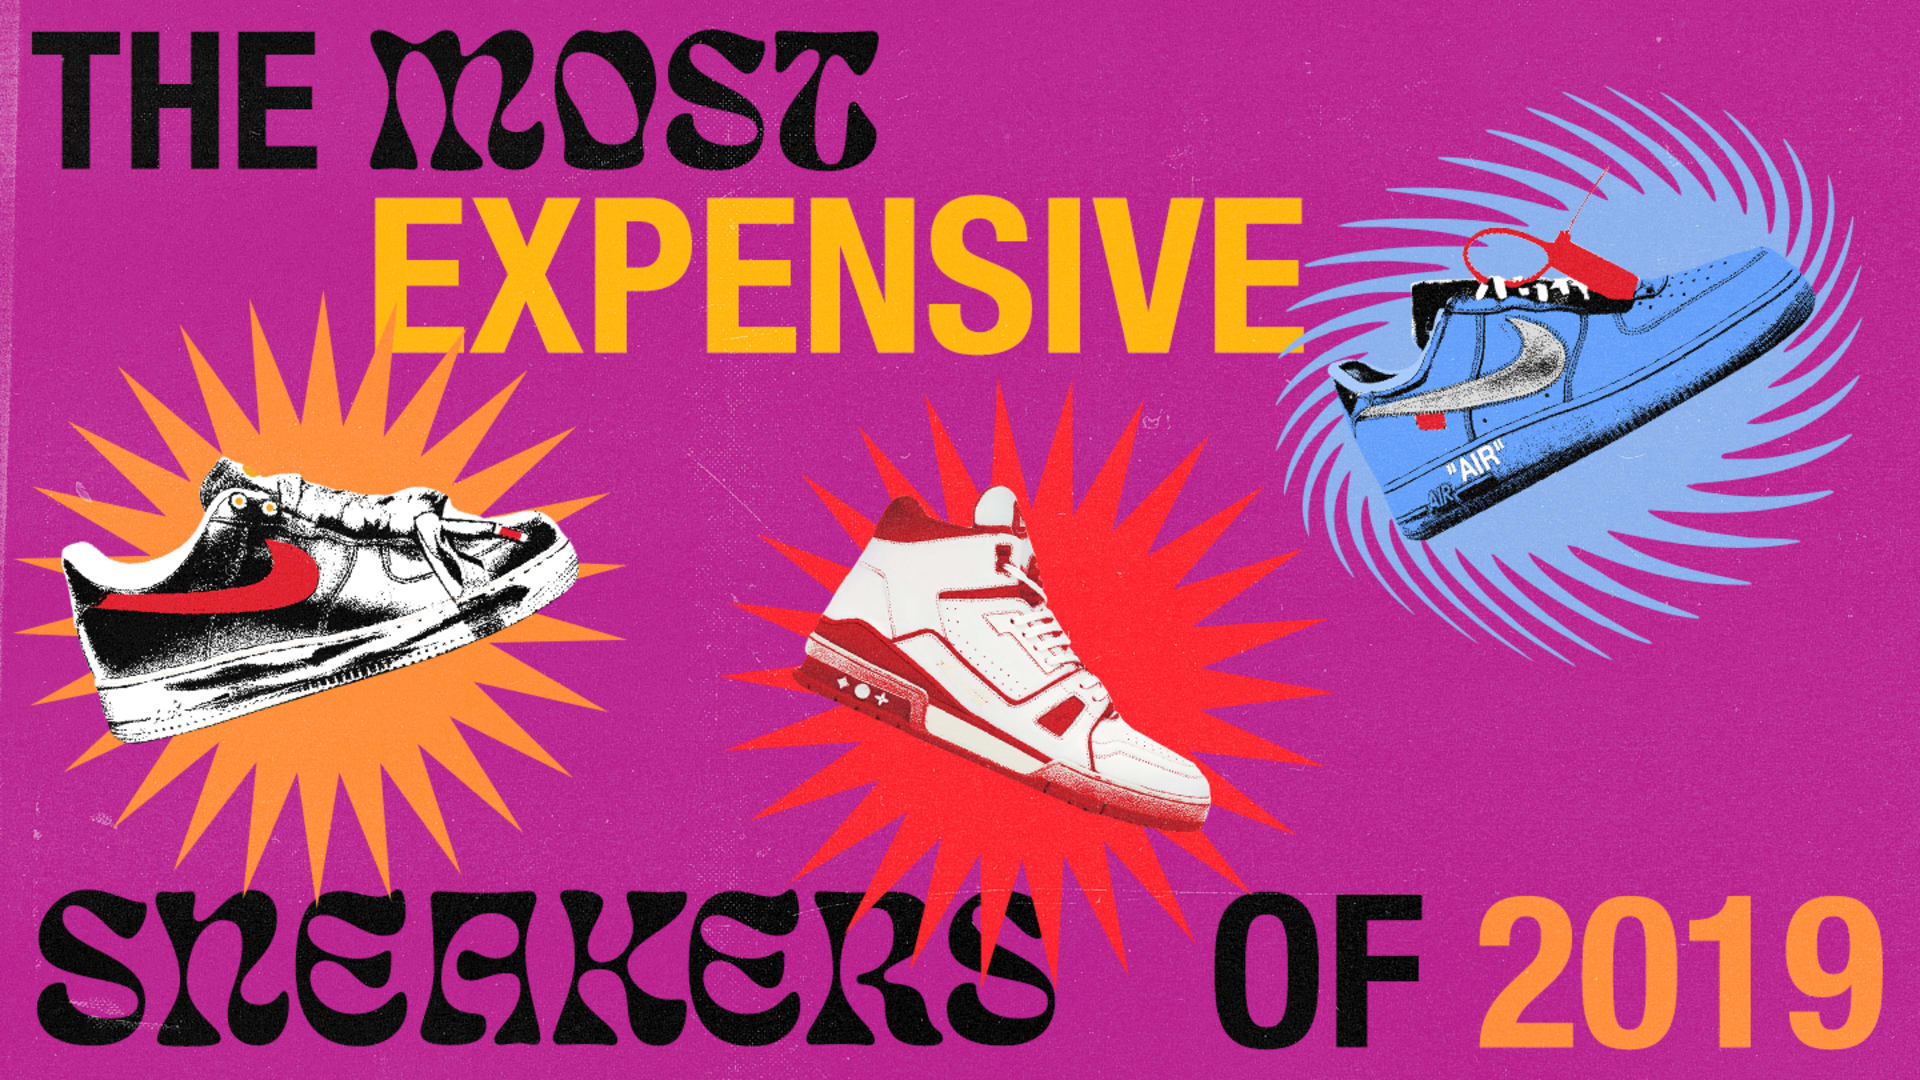 BESTOF2019_ExpensiveSneakers